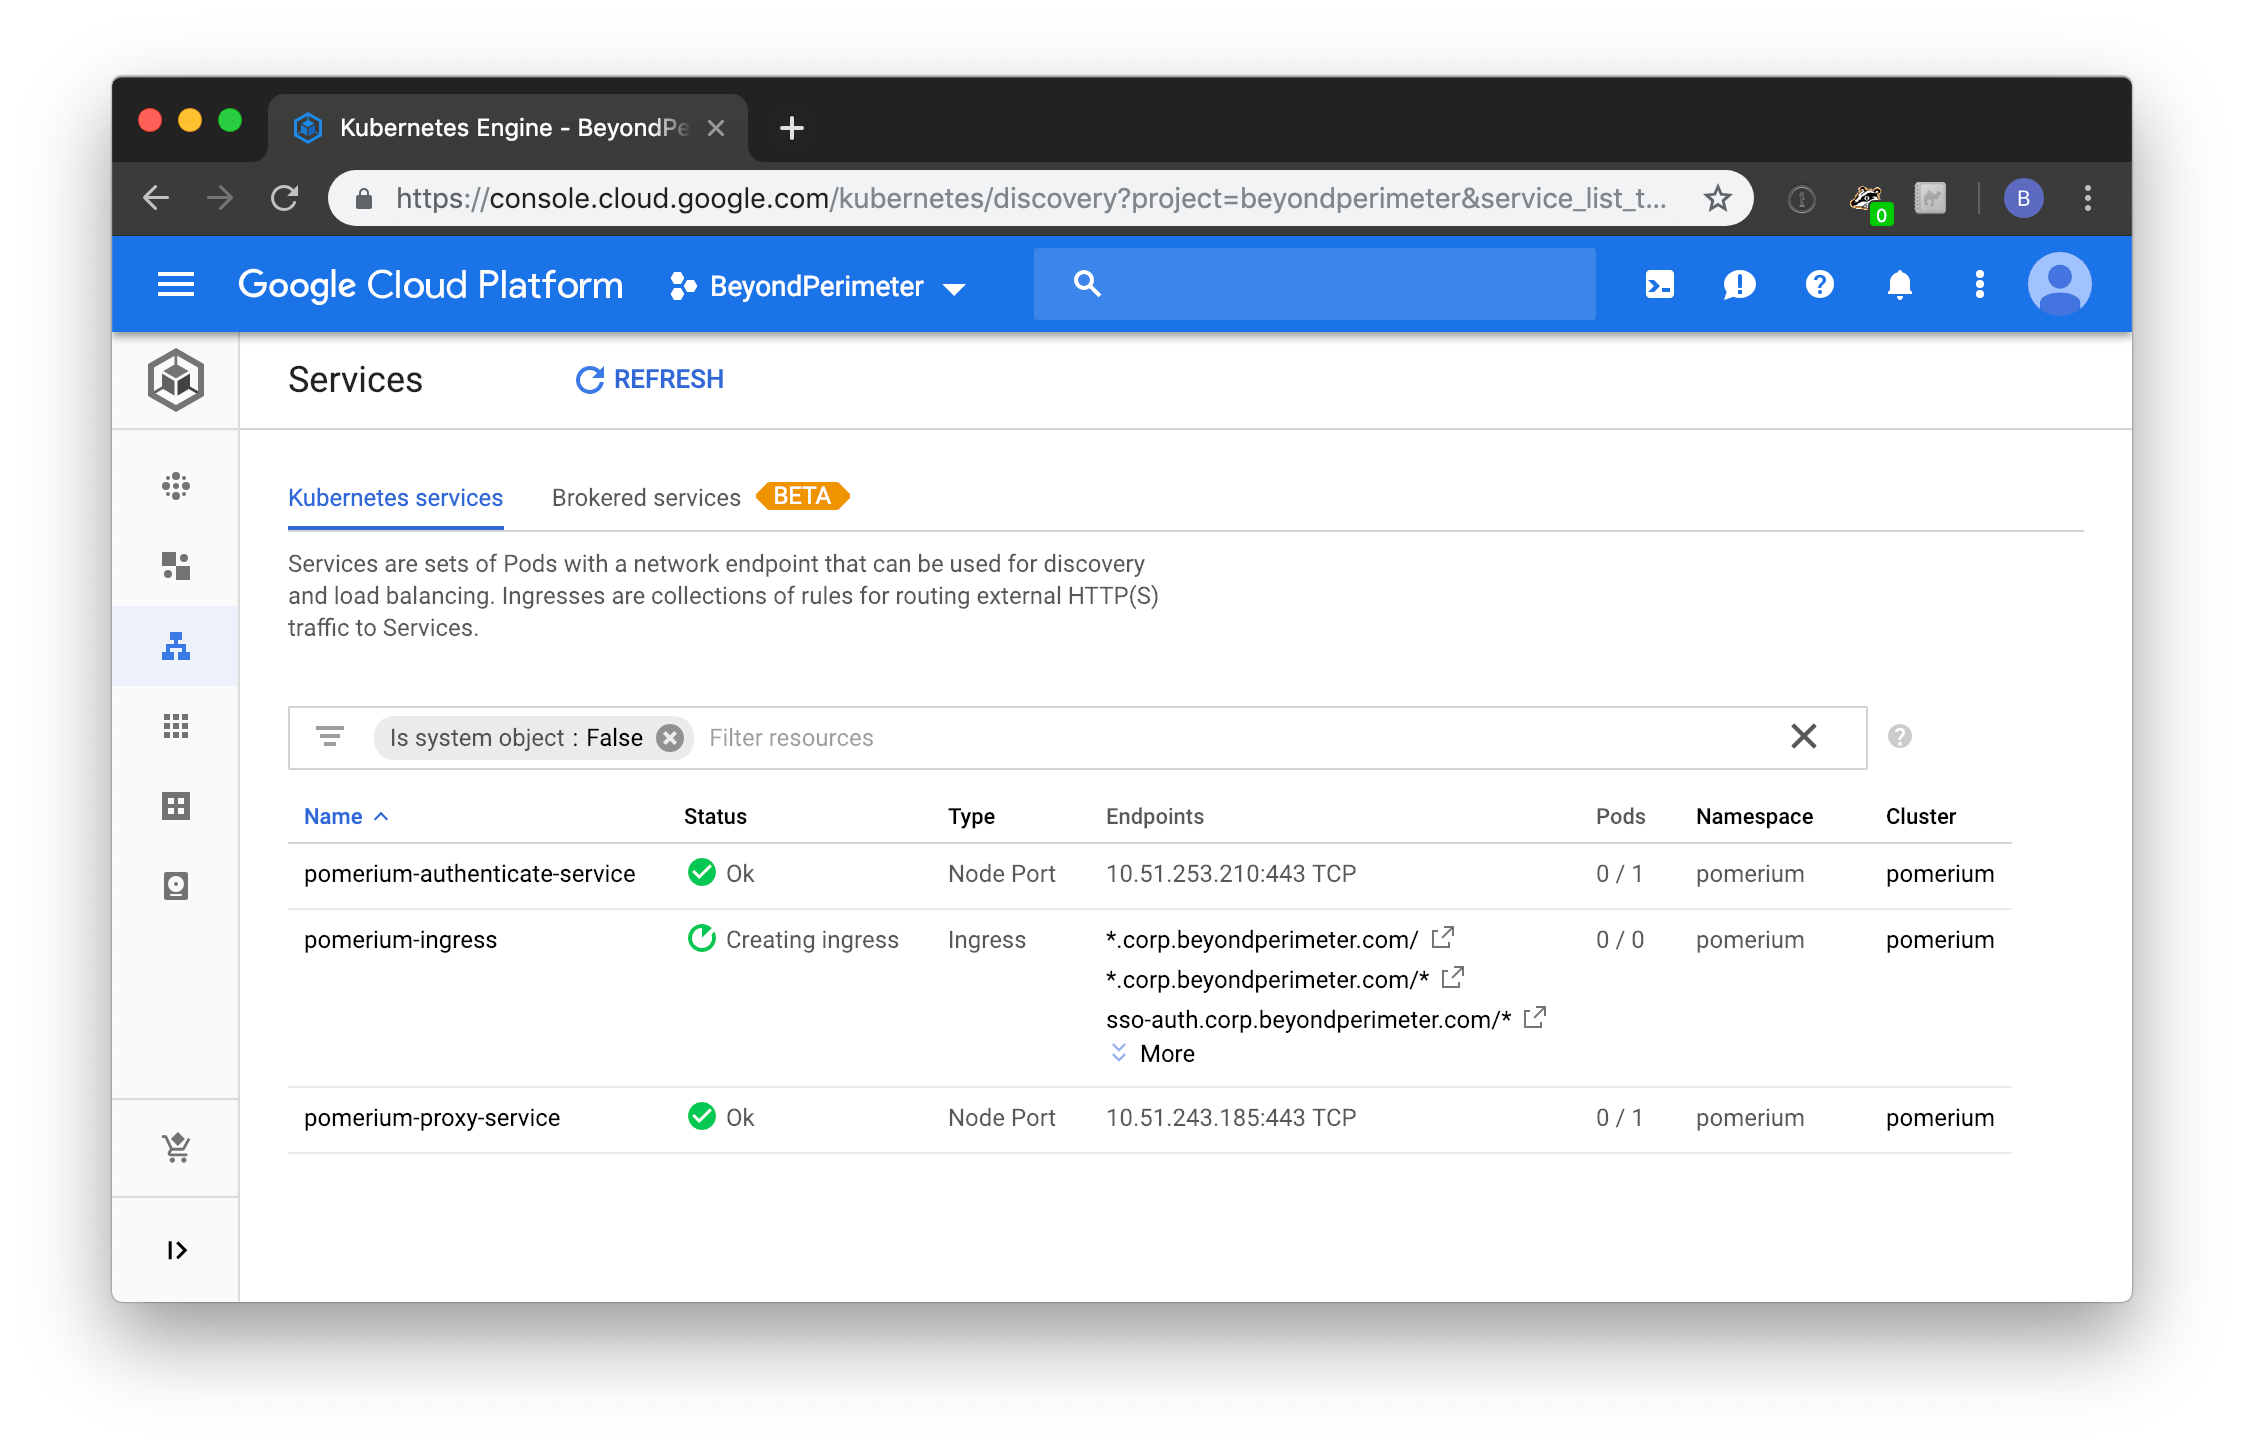 Google's Kubernetes Engine dashboard